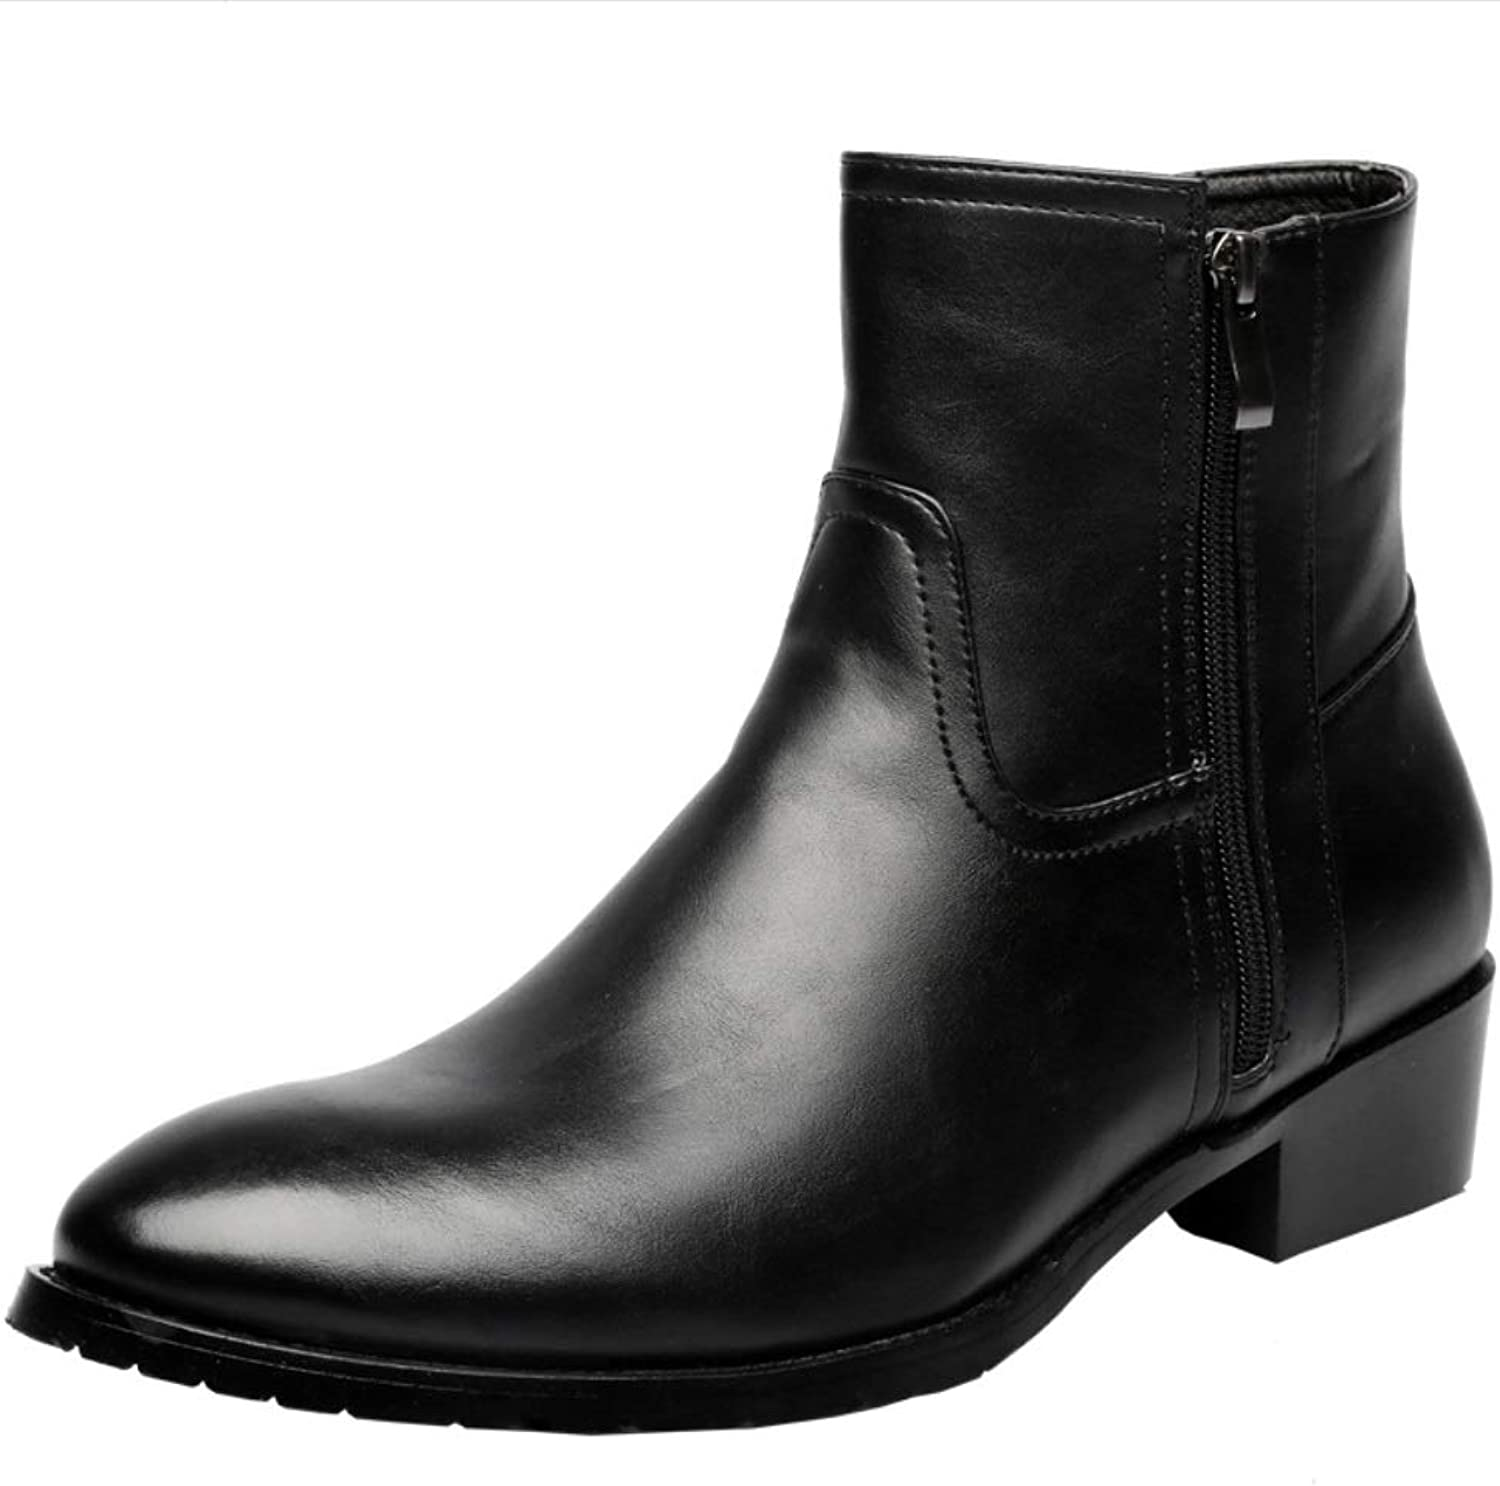 SHANGWU Men's Leather Boots Autumn And Winter Men's Boots England High shoes Martin Boots Men's Leather Boots Pointed Boots